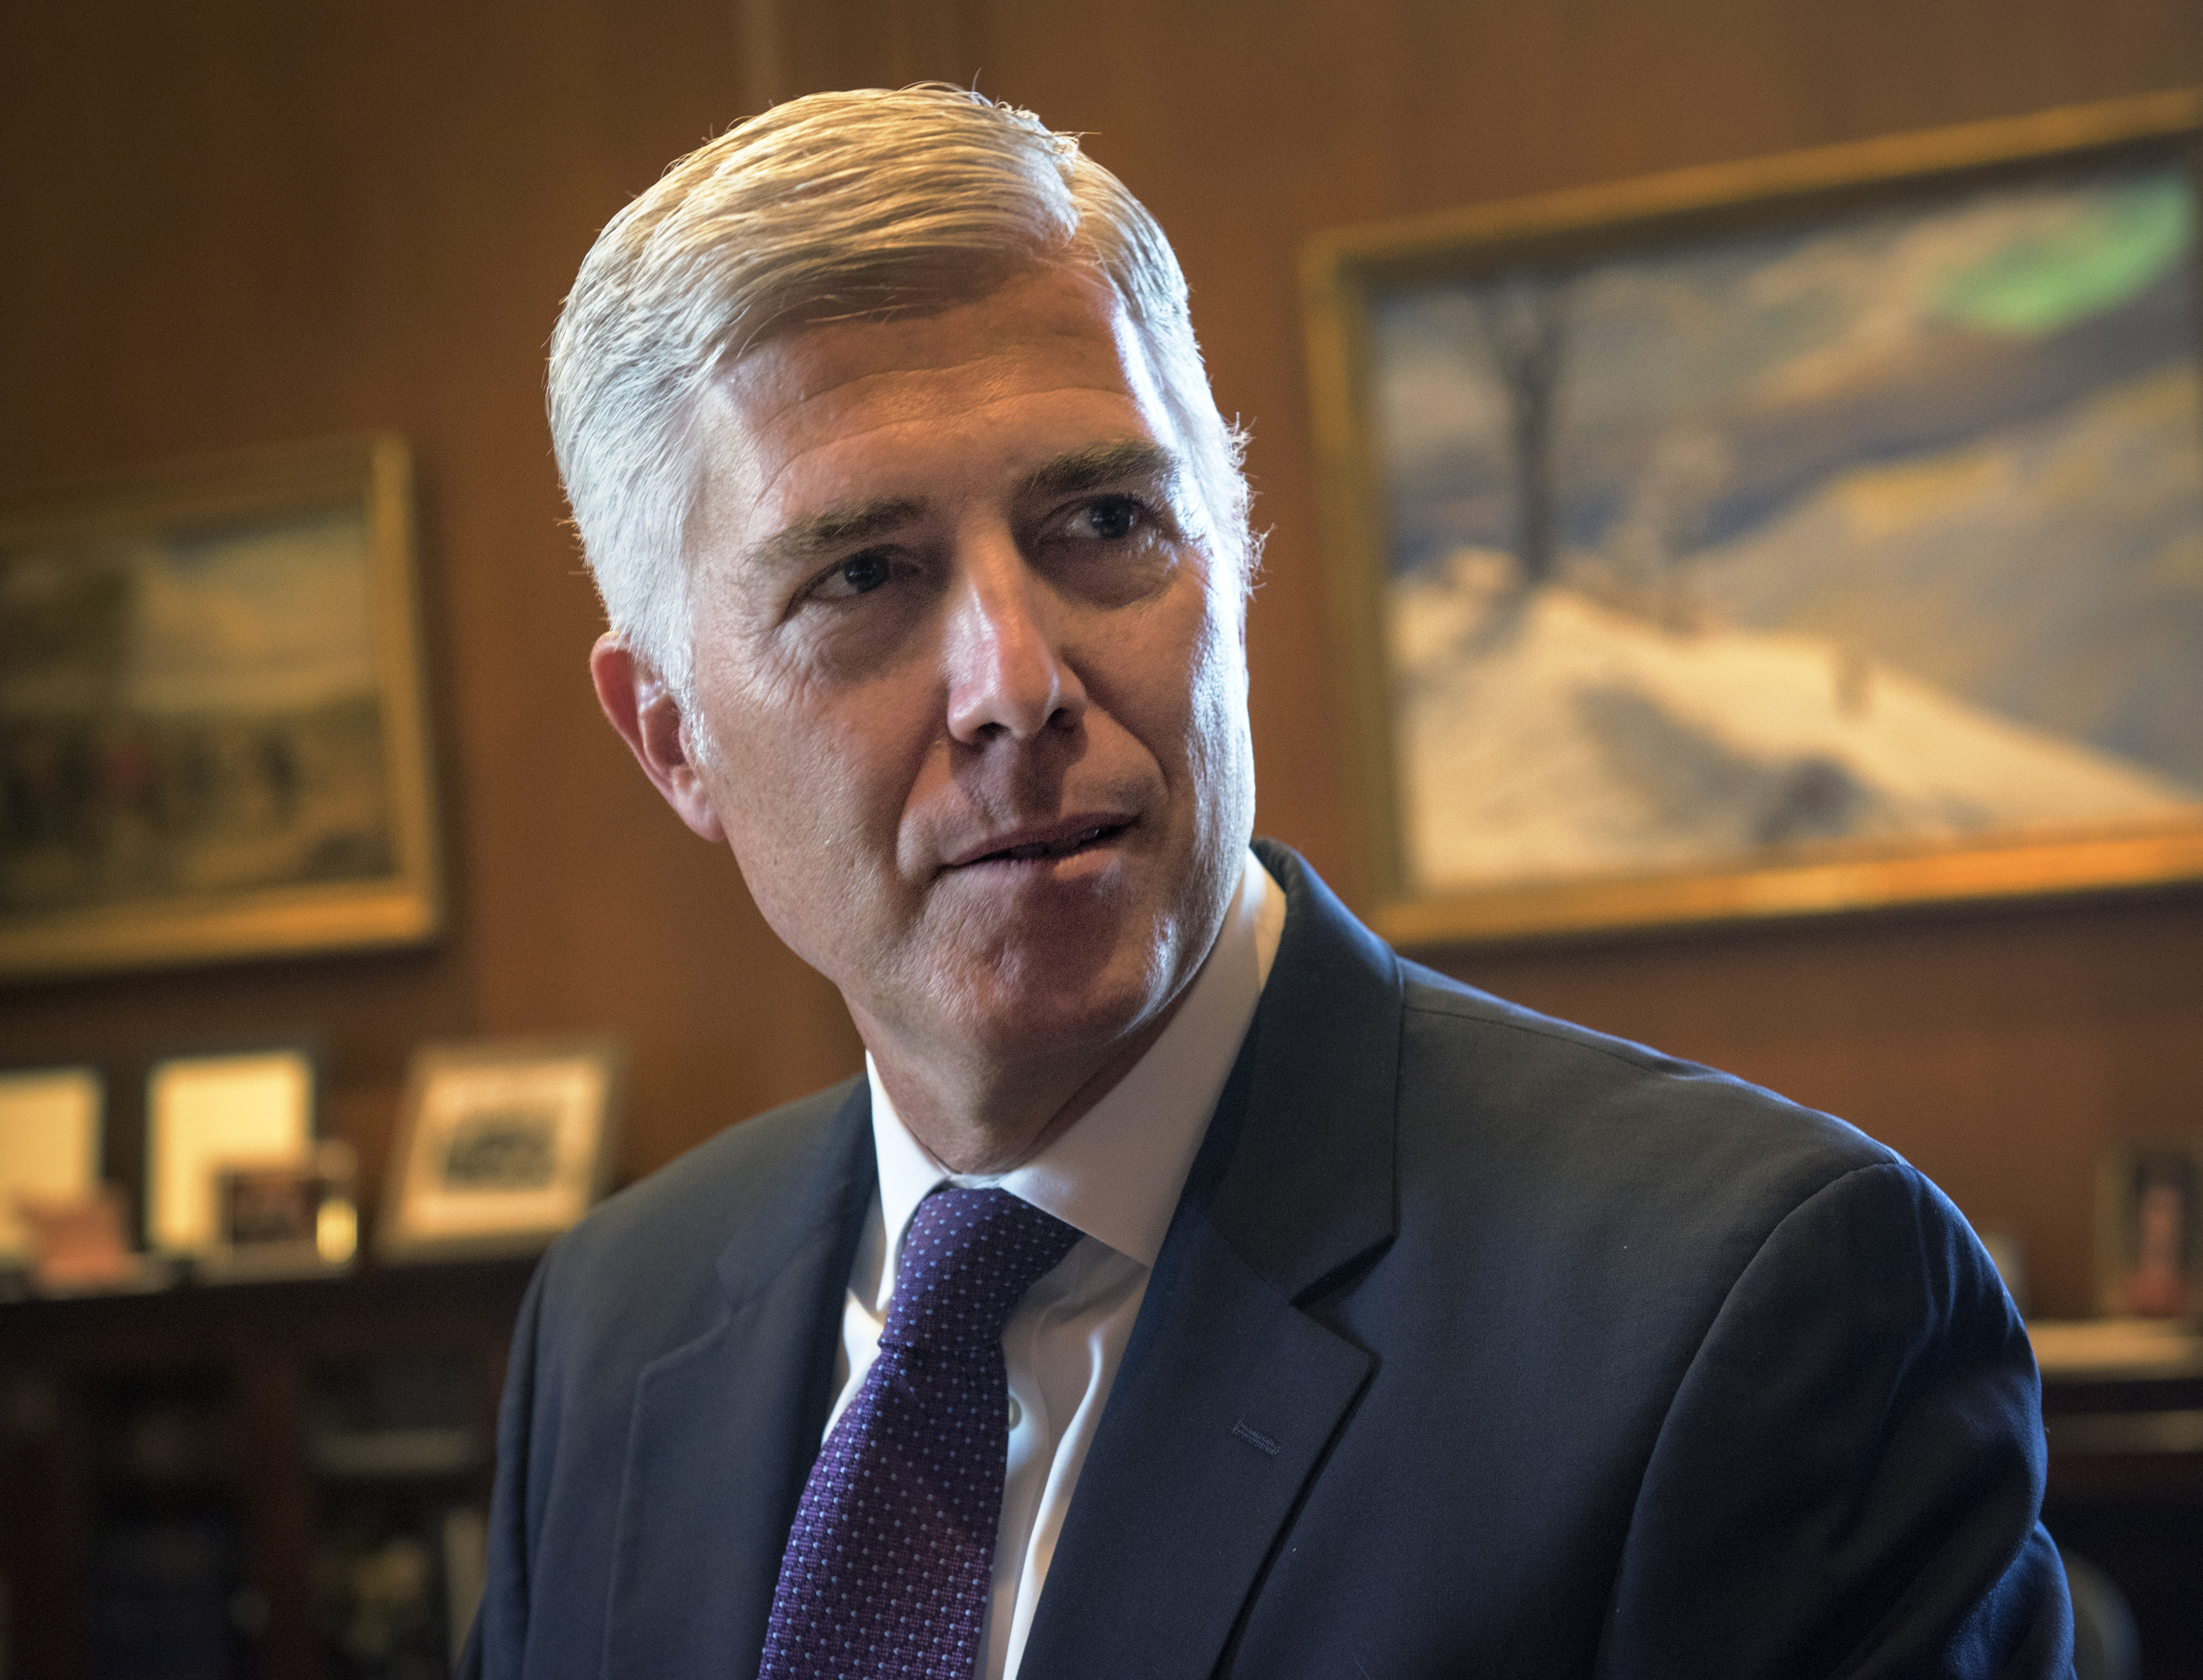 Justice Gorsuch emerges as an unlikely swing vote in the LGBTQ discrimination cases